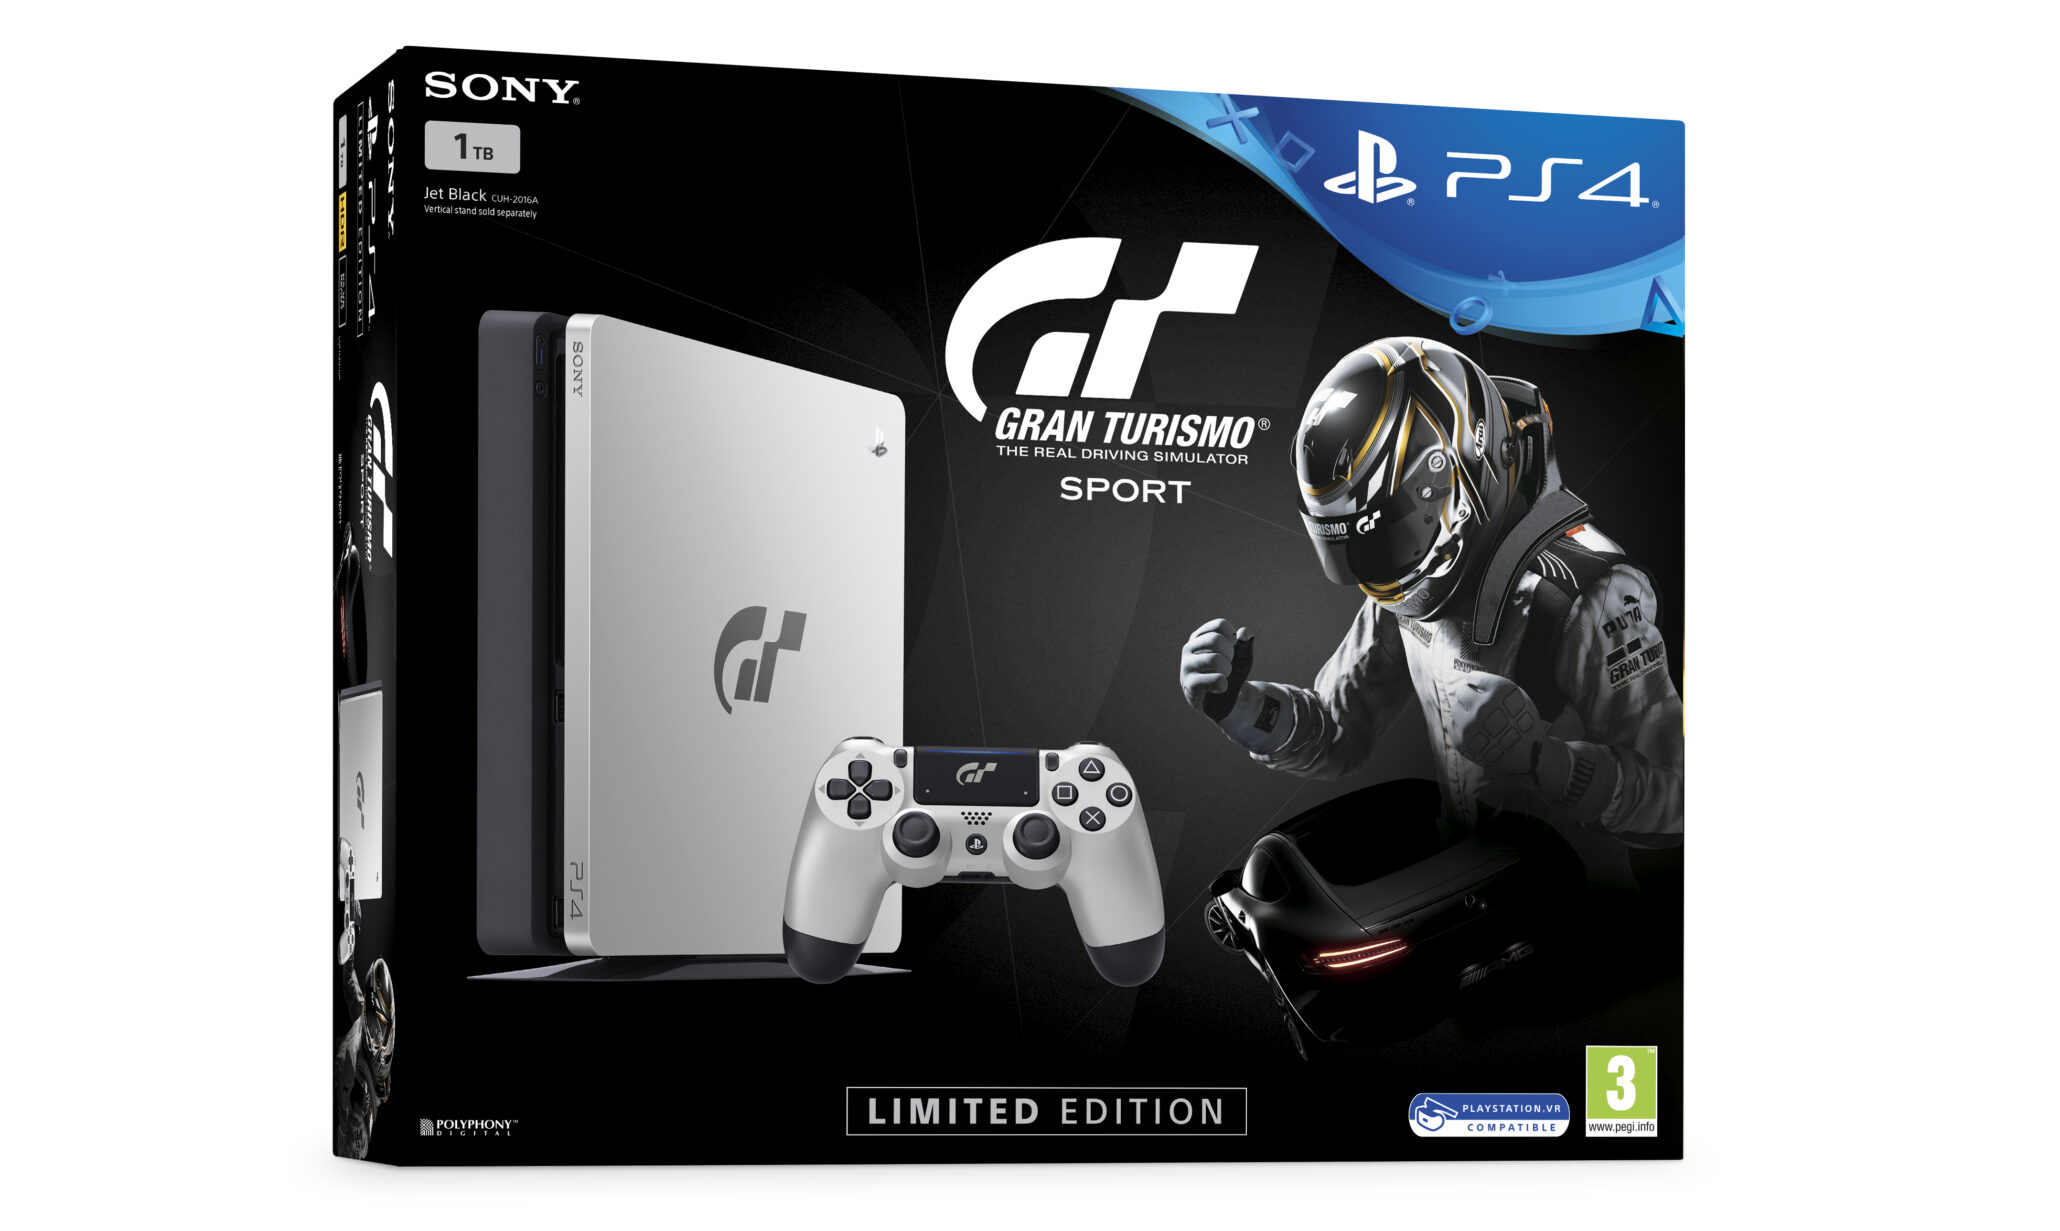 limited edition gran turismo sport playstation 4 slim 1tb announced for europe uk and australasia. Black Bedroom Furniture Sets. Home Design Ideas